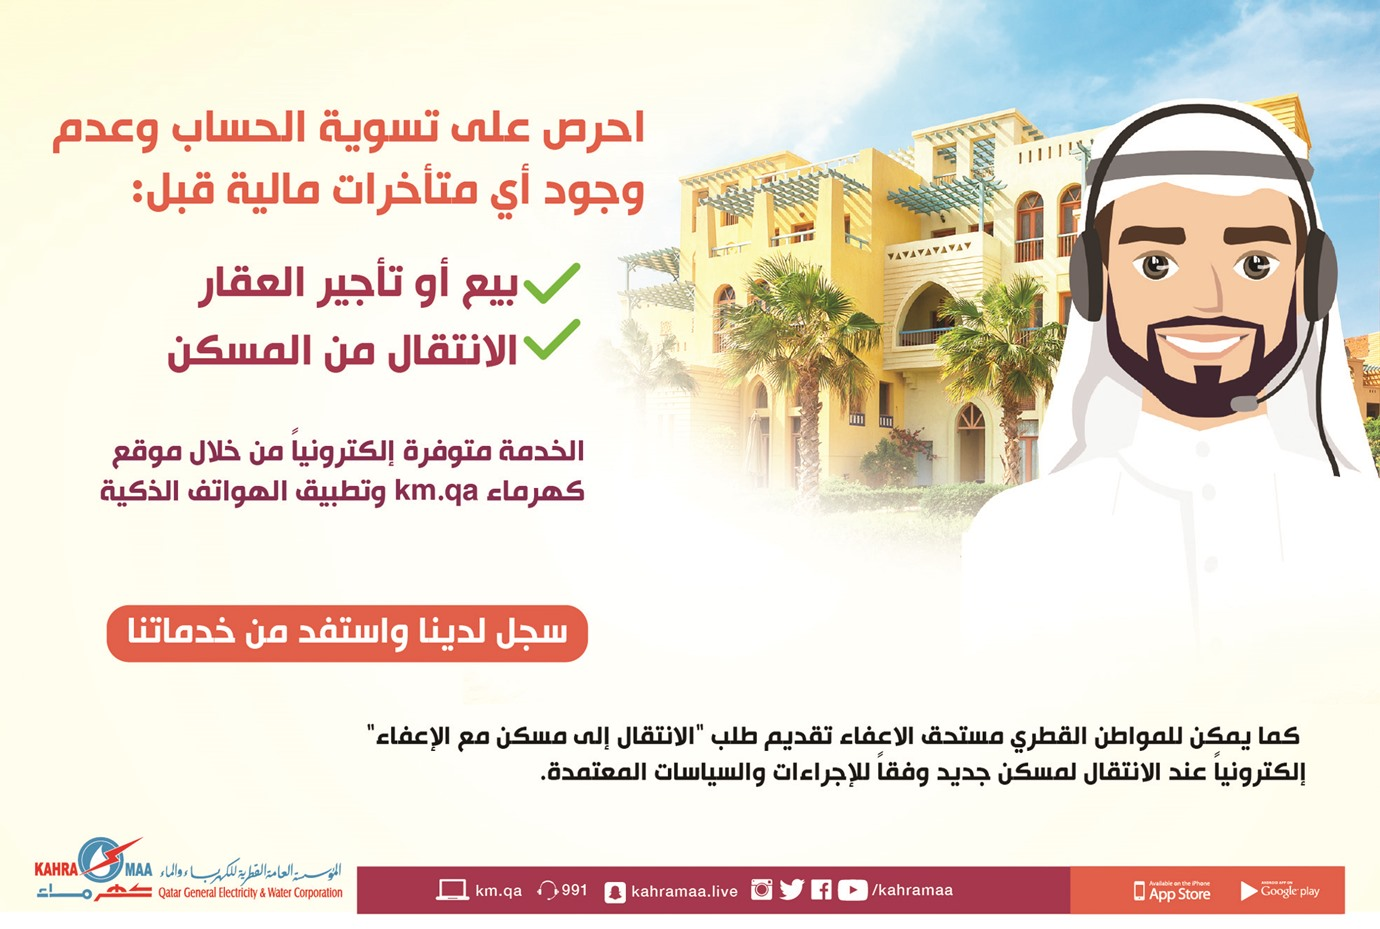 Kahramaa launches campaign to ensure smooth services